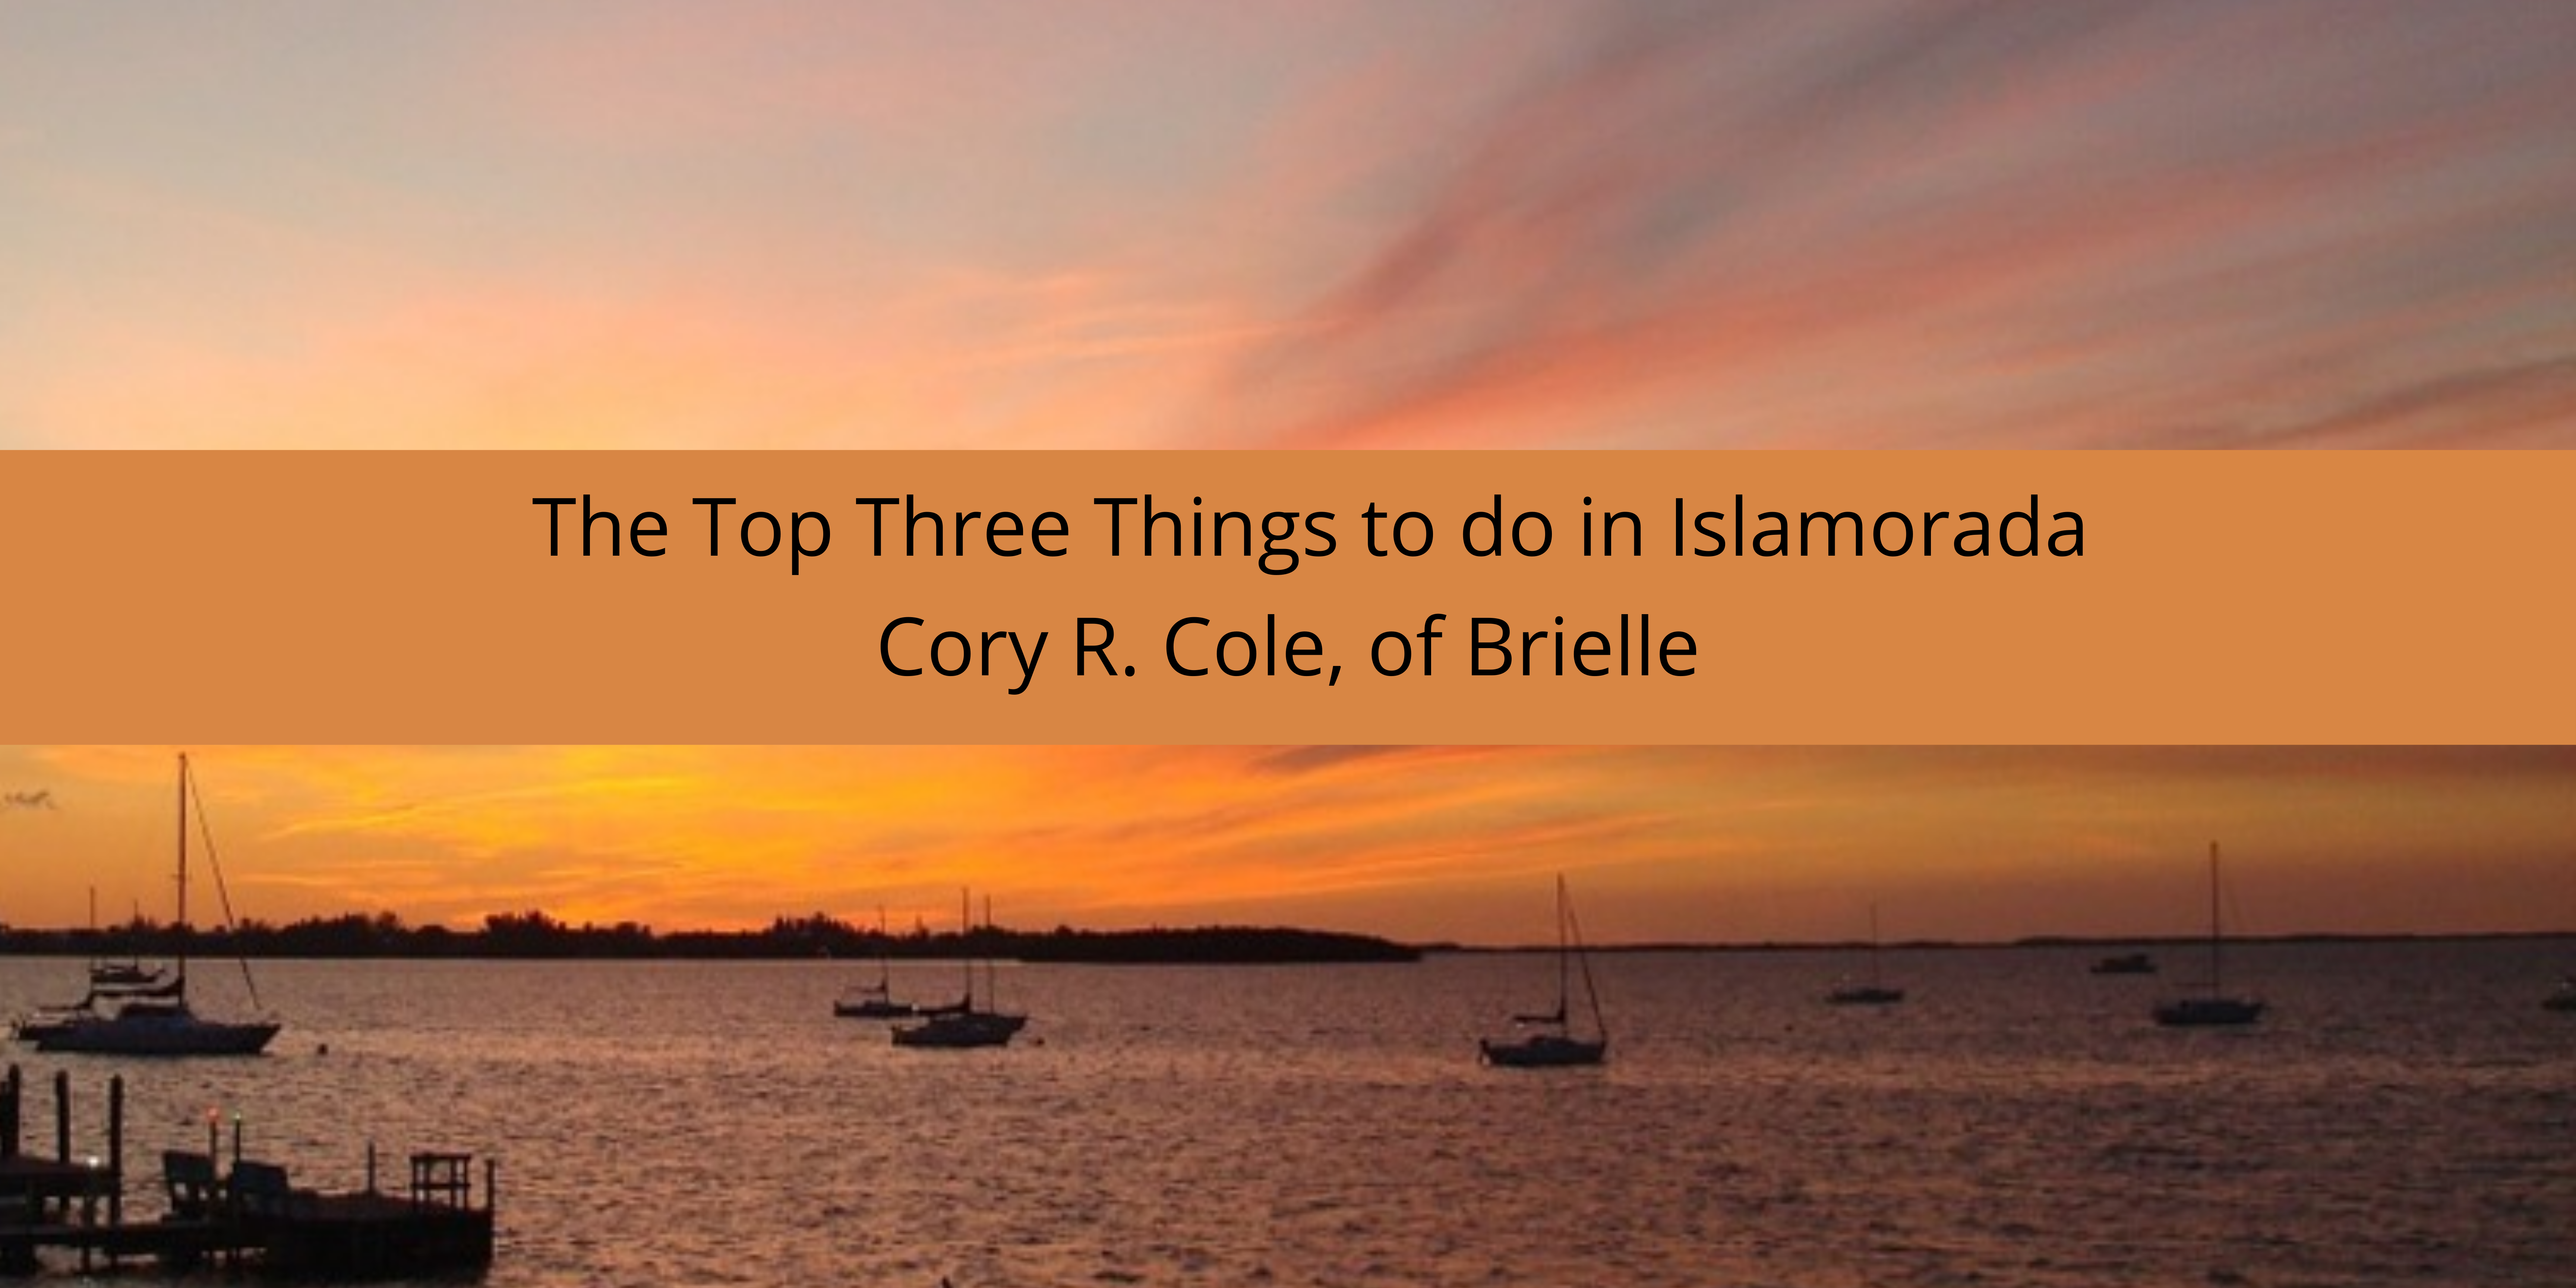 The Top Three Things to do in Islamorada According to Cory R. Cole, of Brielle